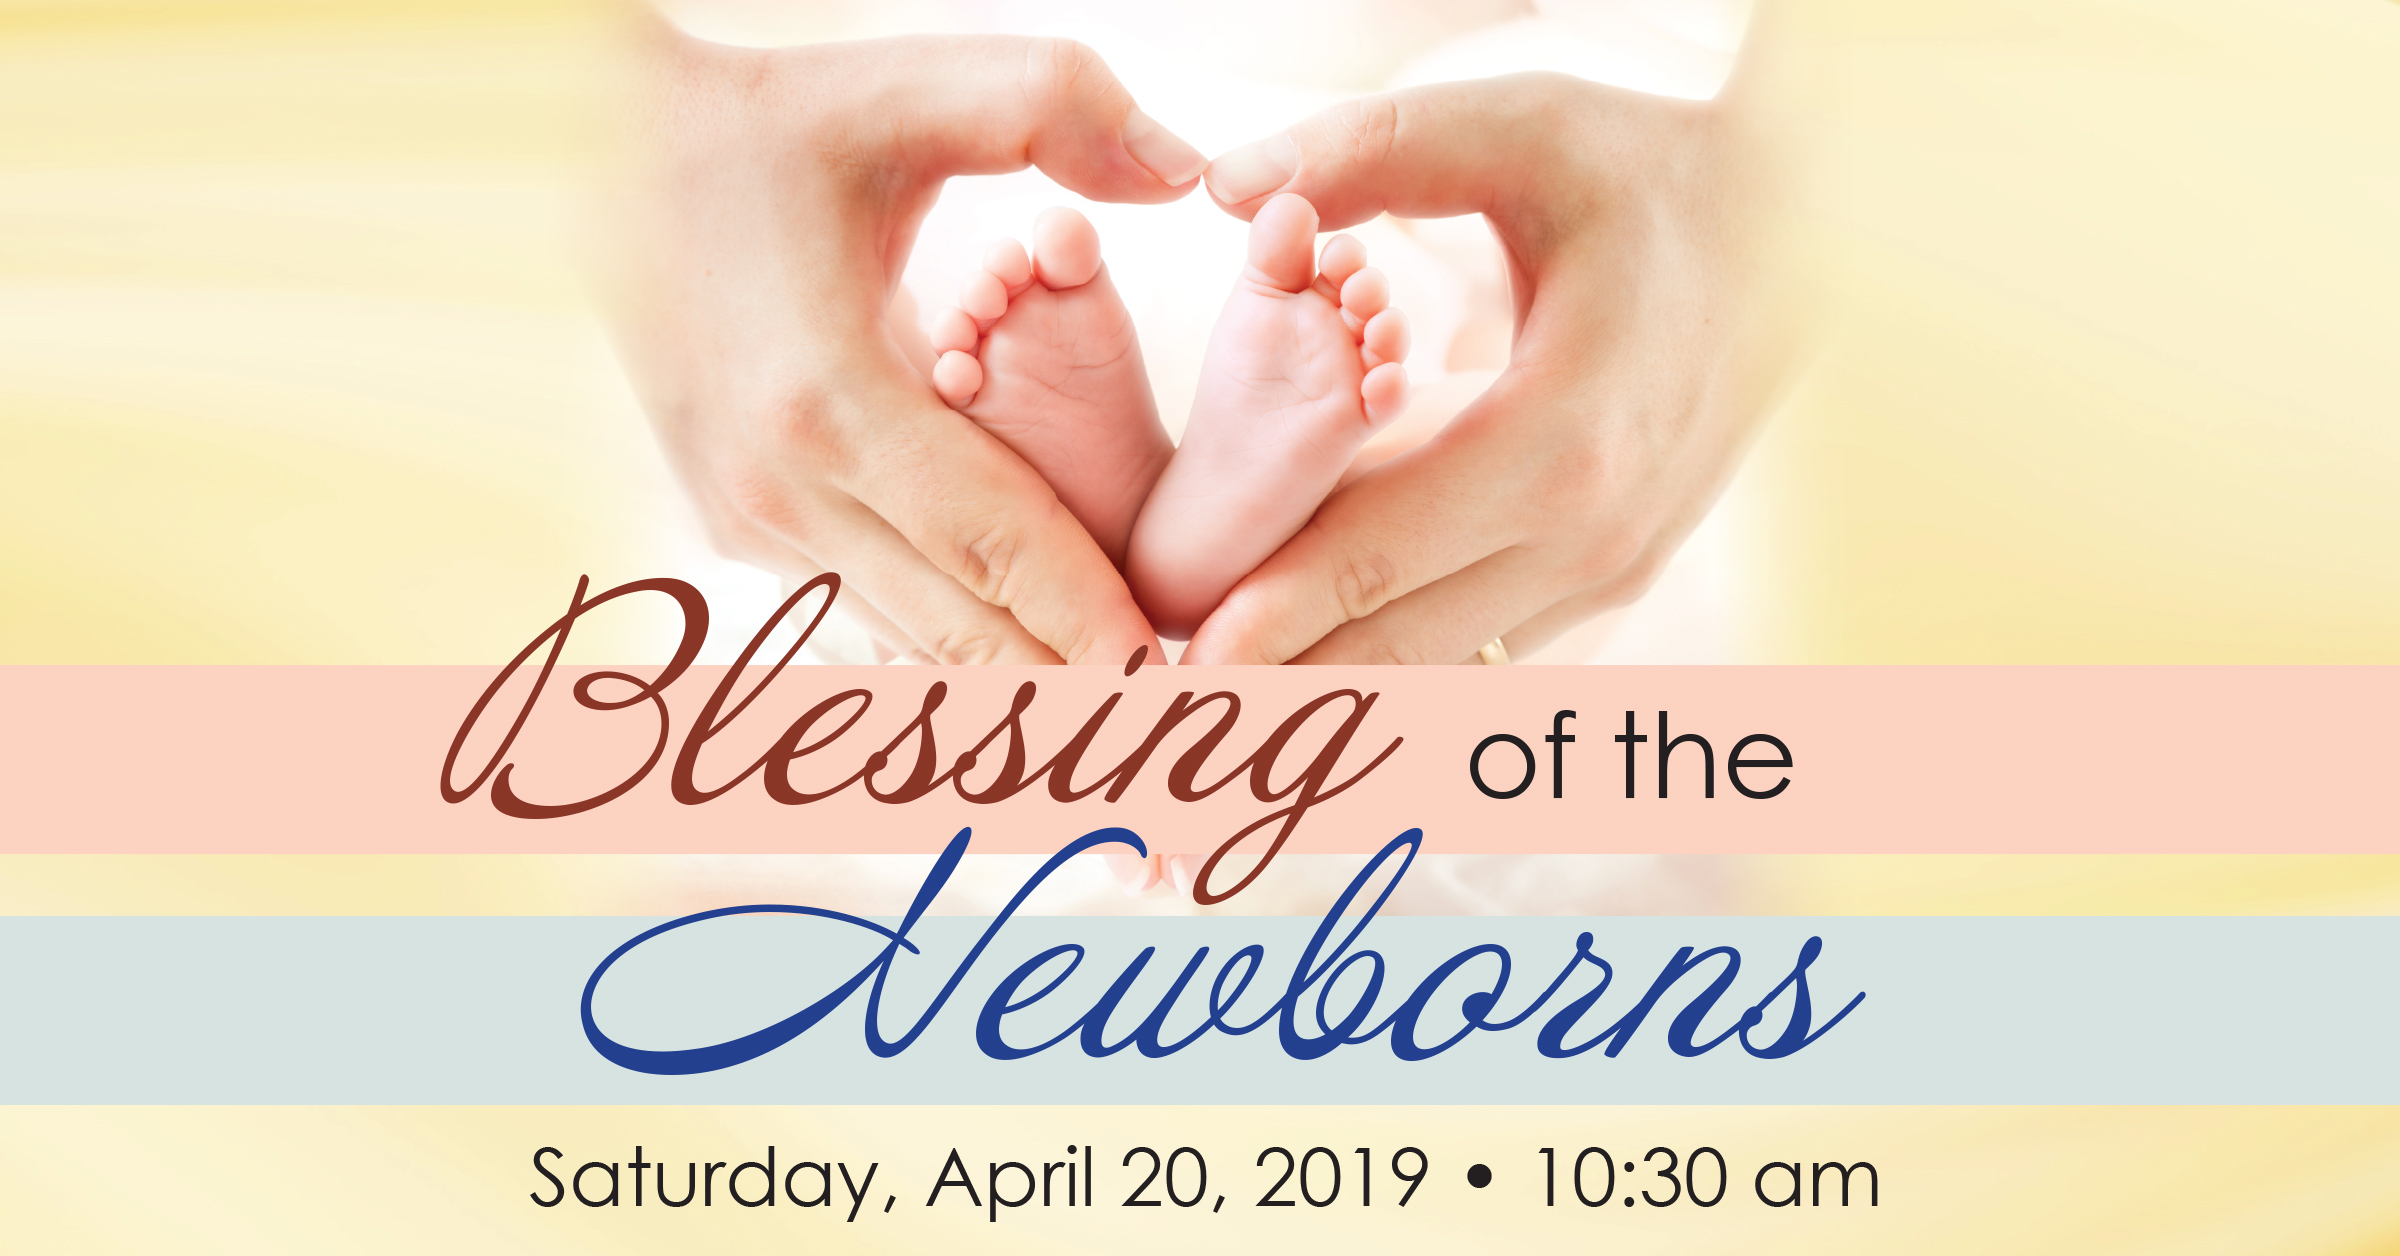 Banner Image for Blessing of the Newborns